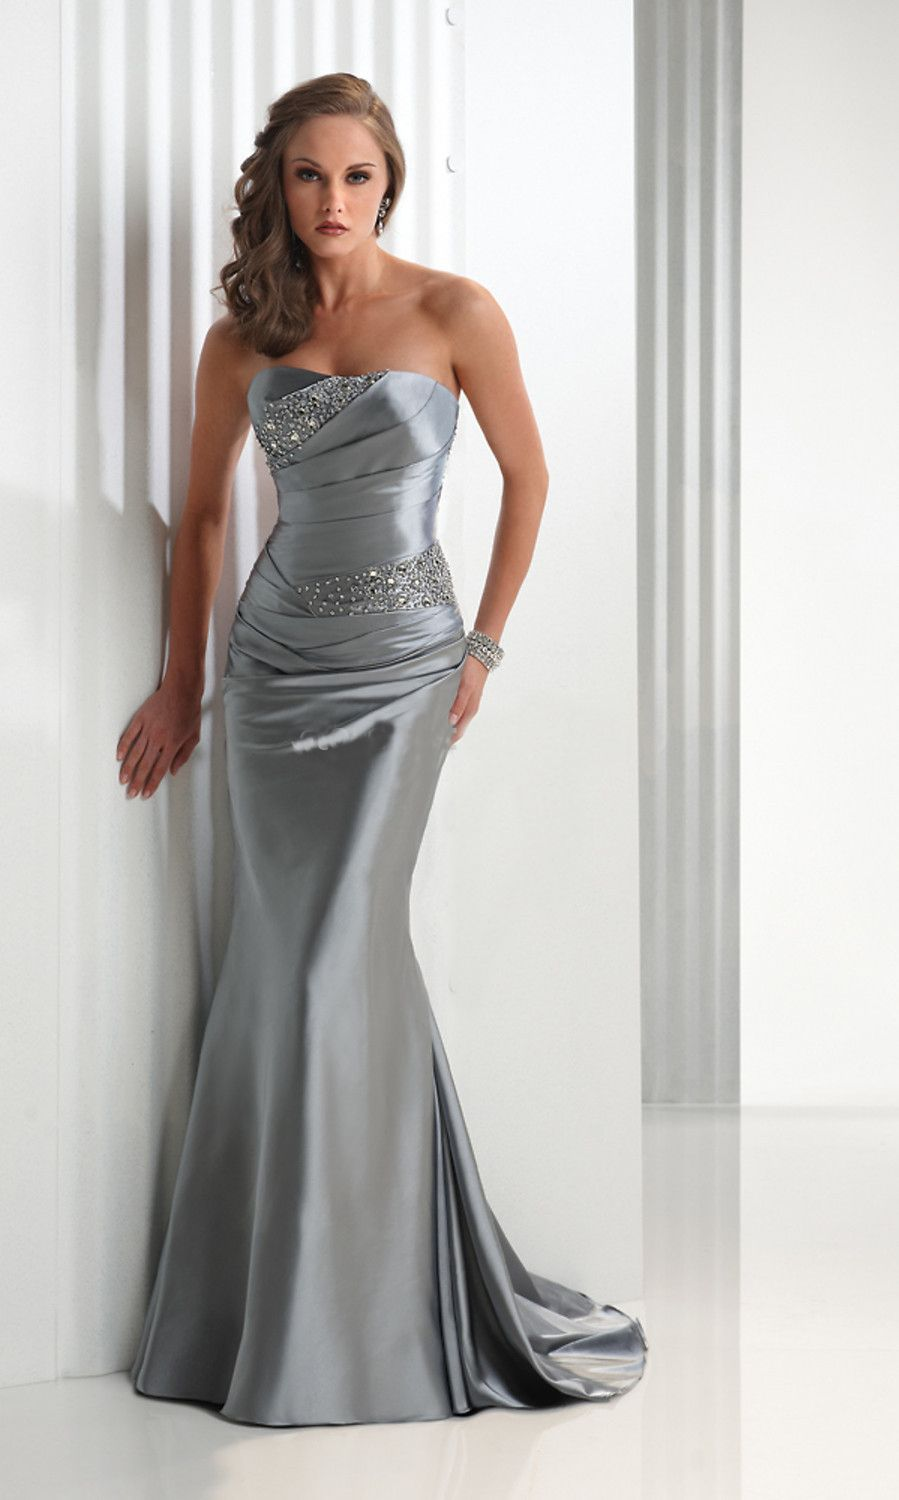 Silver bridesmaid dresses nice 1 9 silver bridesmaid dresses ideas silver bridesmaid dresses nice 1 9 ombrellifo Images